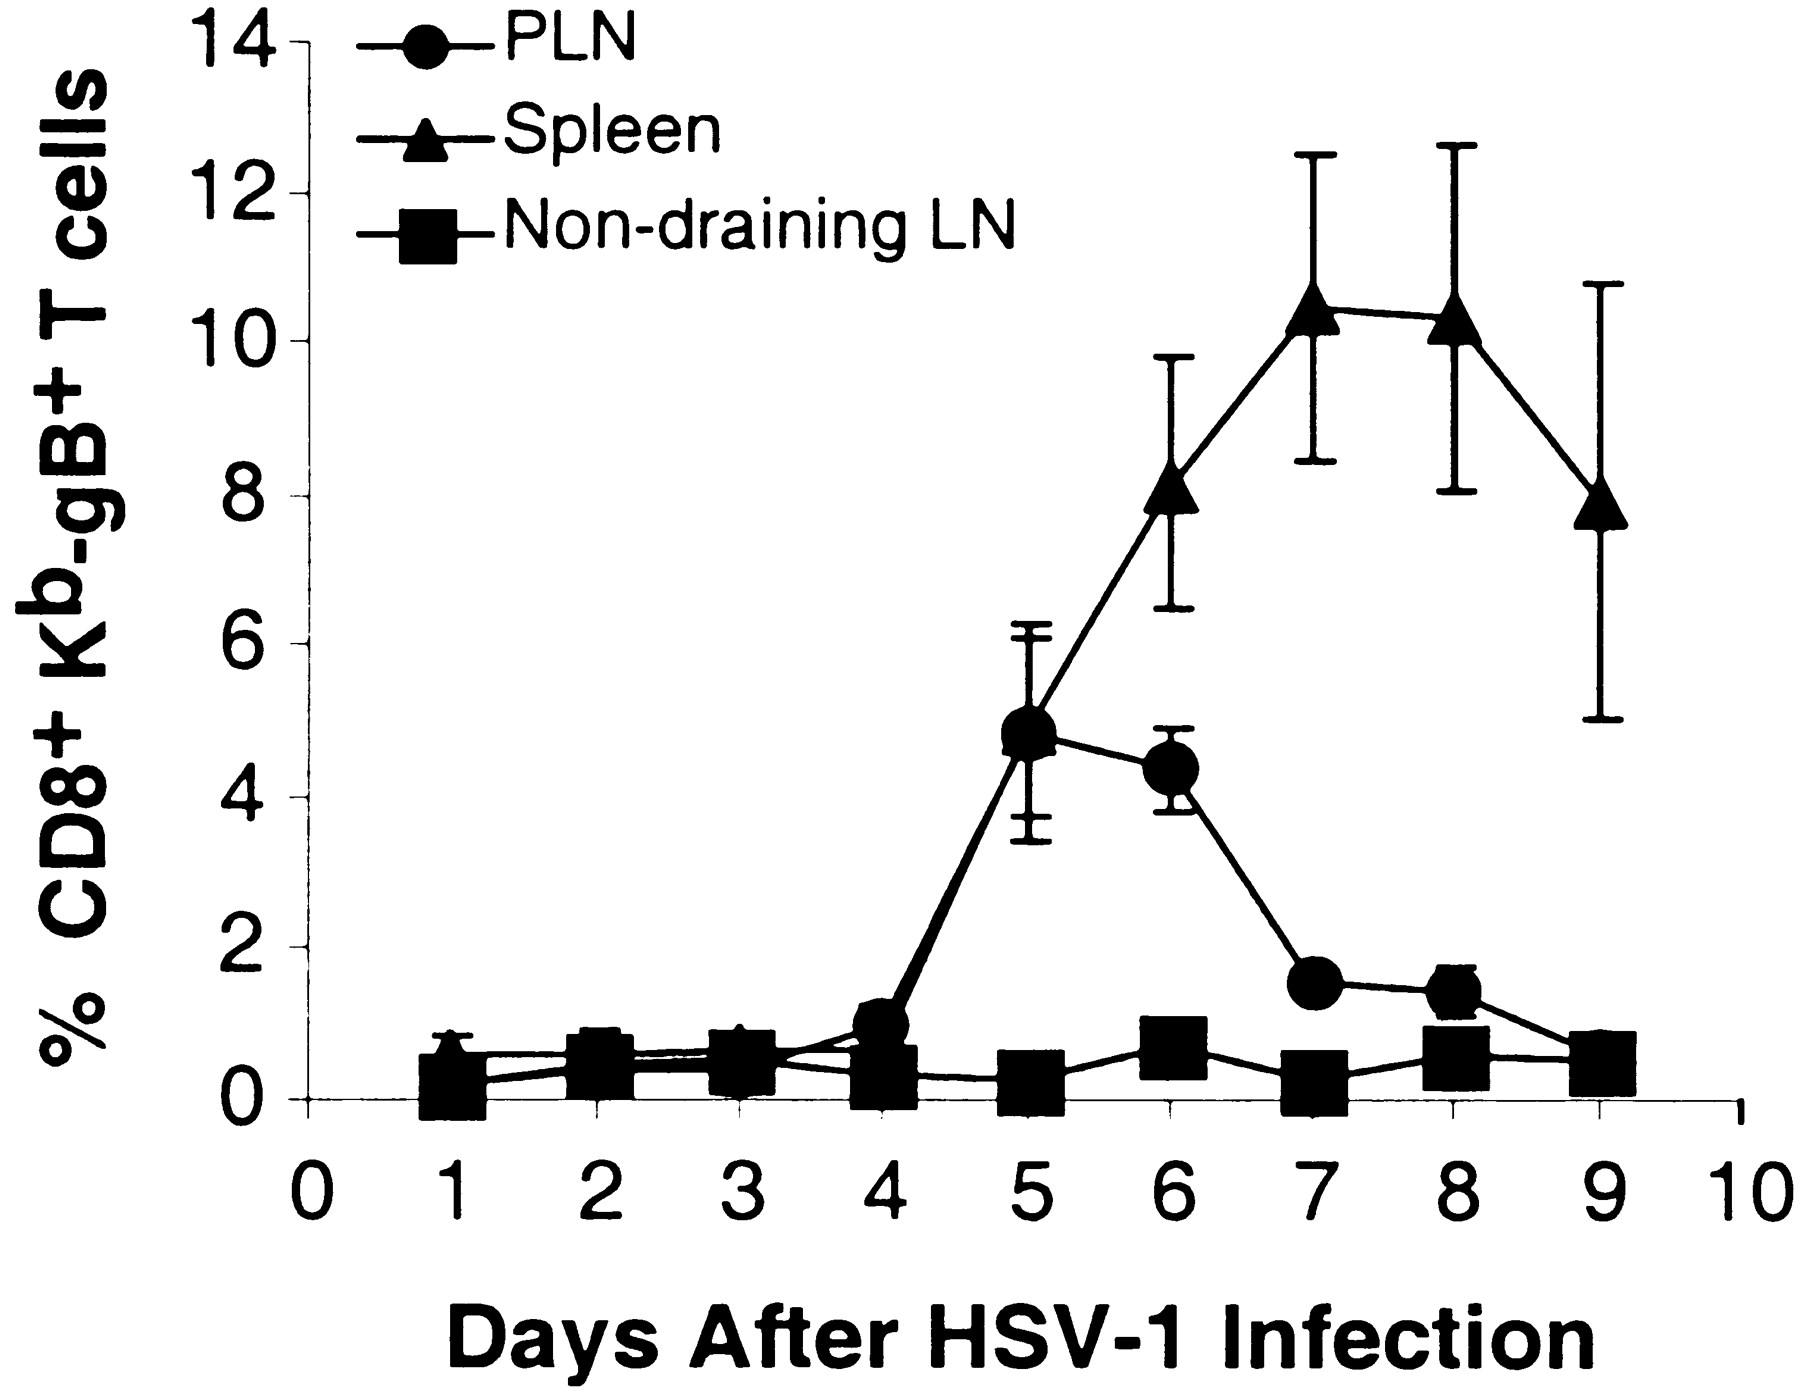 Progression Of Armed Ctl From Draining Lymph Node To Spleen Shortly